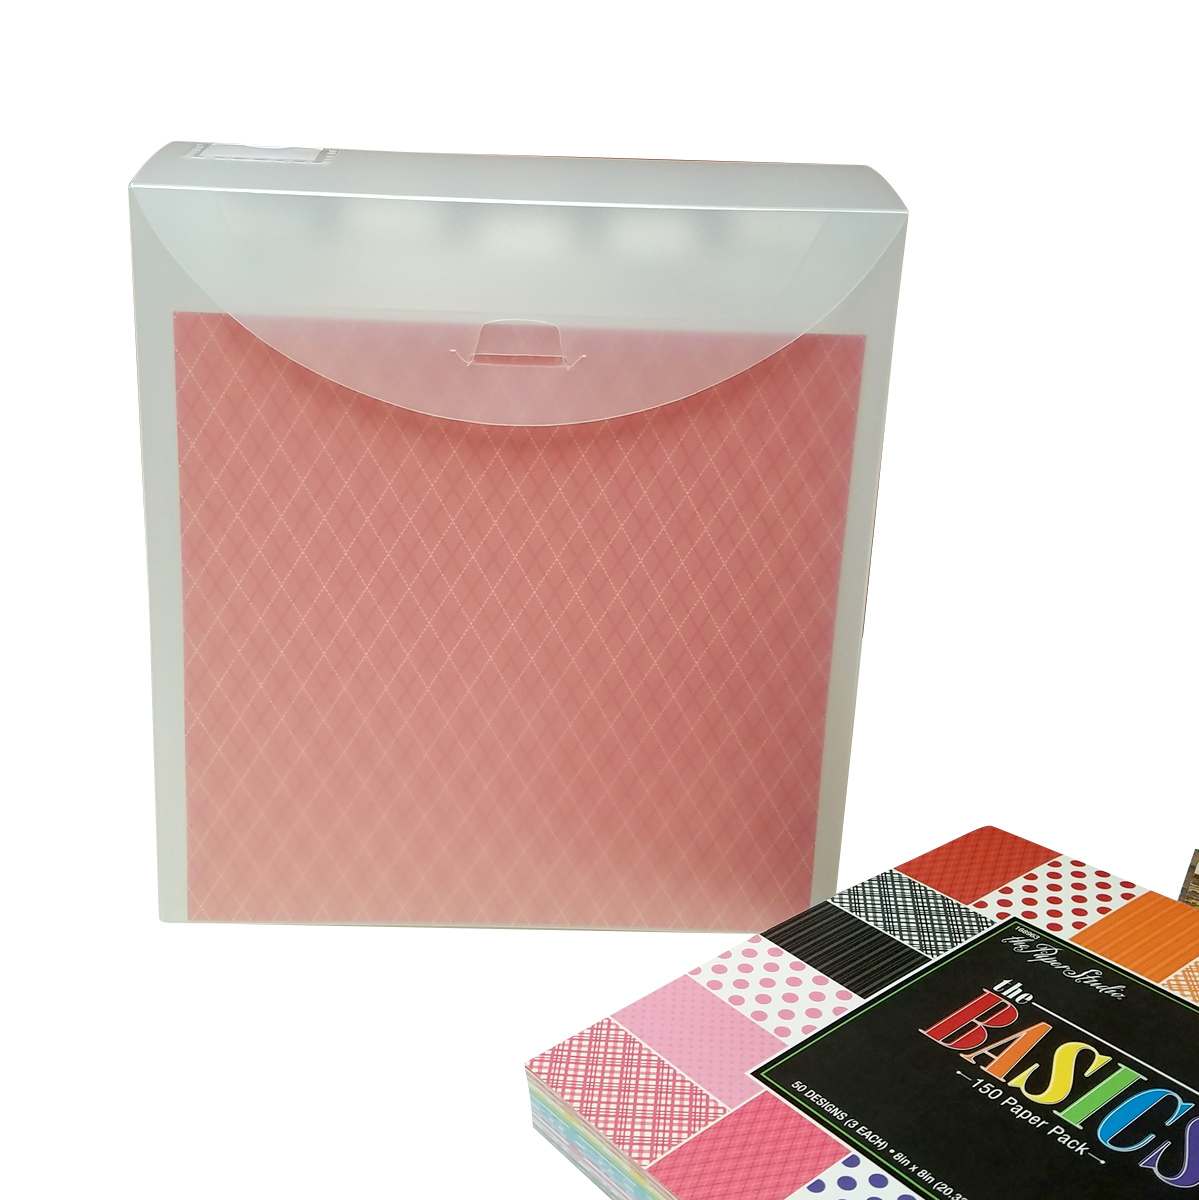 Organize and store 8x8 scrapbooking paper and cardstock. EXE-FF